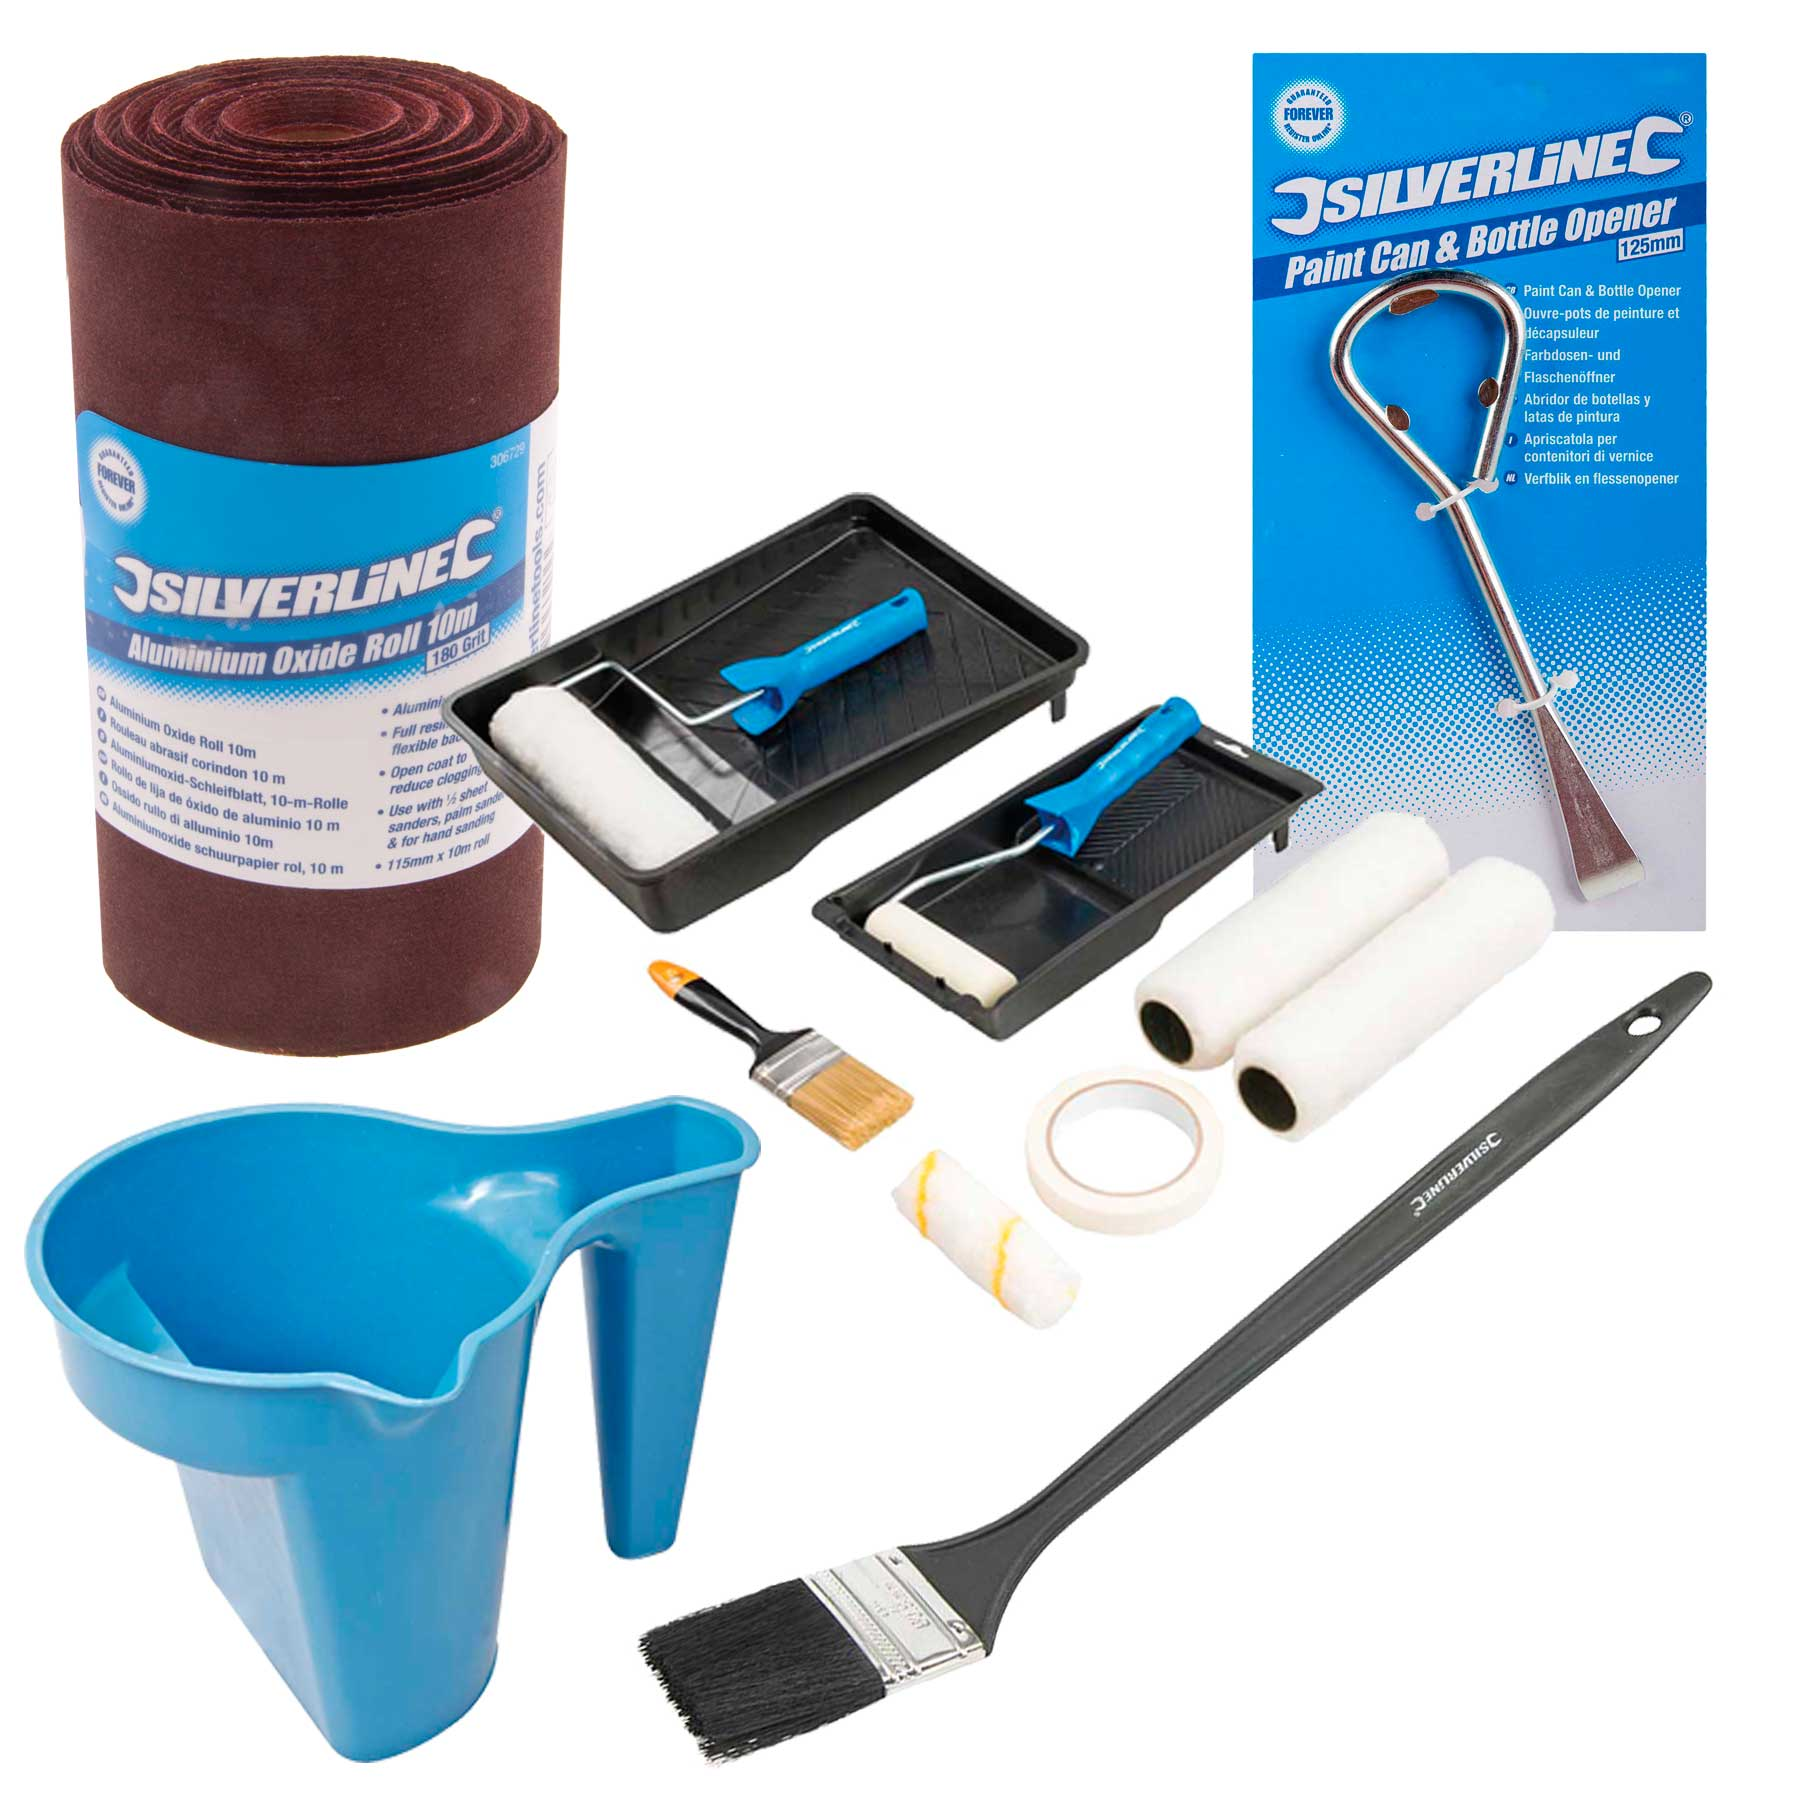 Silverline painting decorating kit silverline painting for Decoration kit